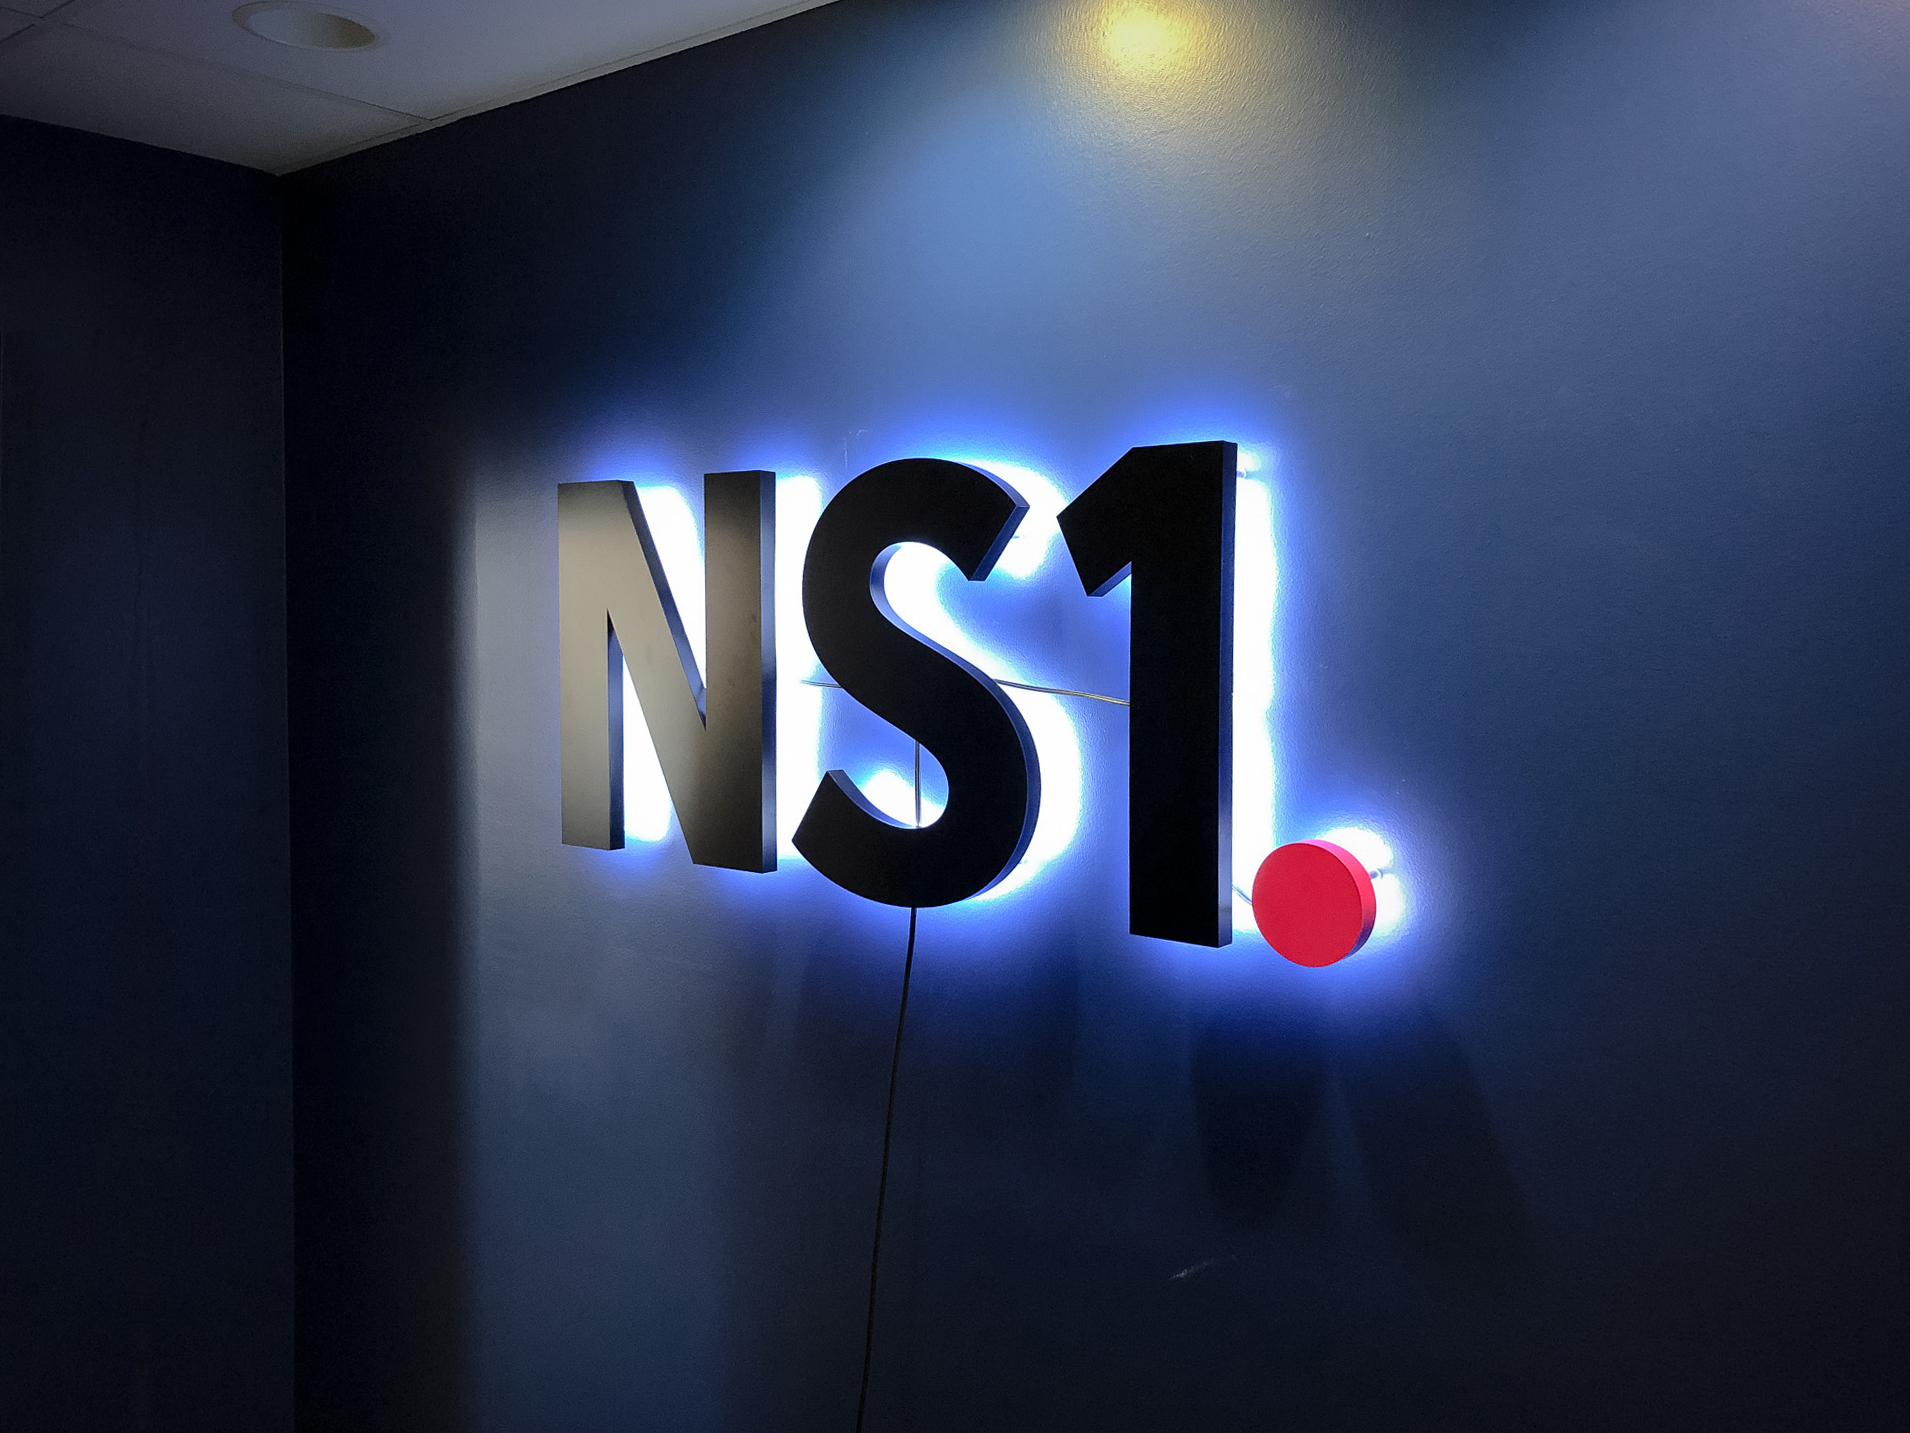 NS1 halo lit sign on dark blue wall